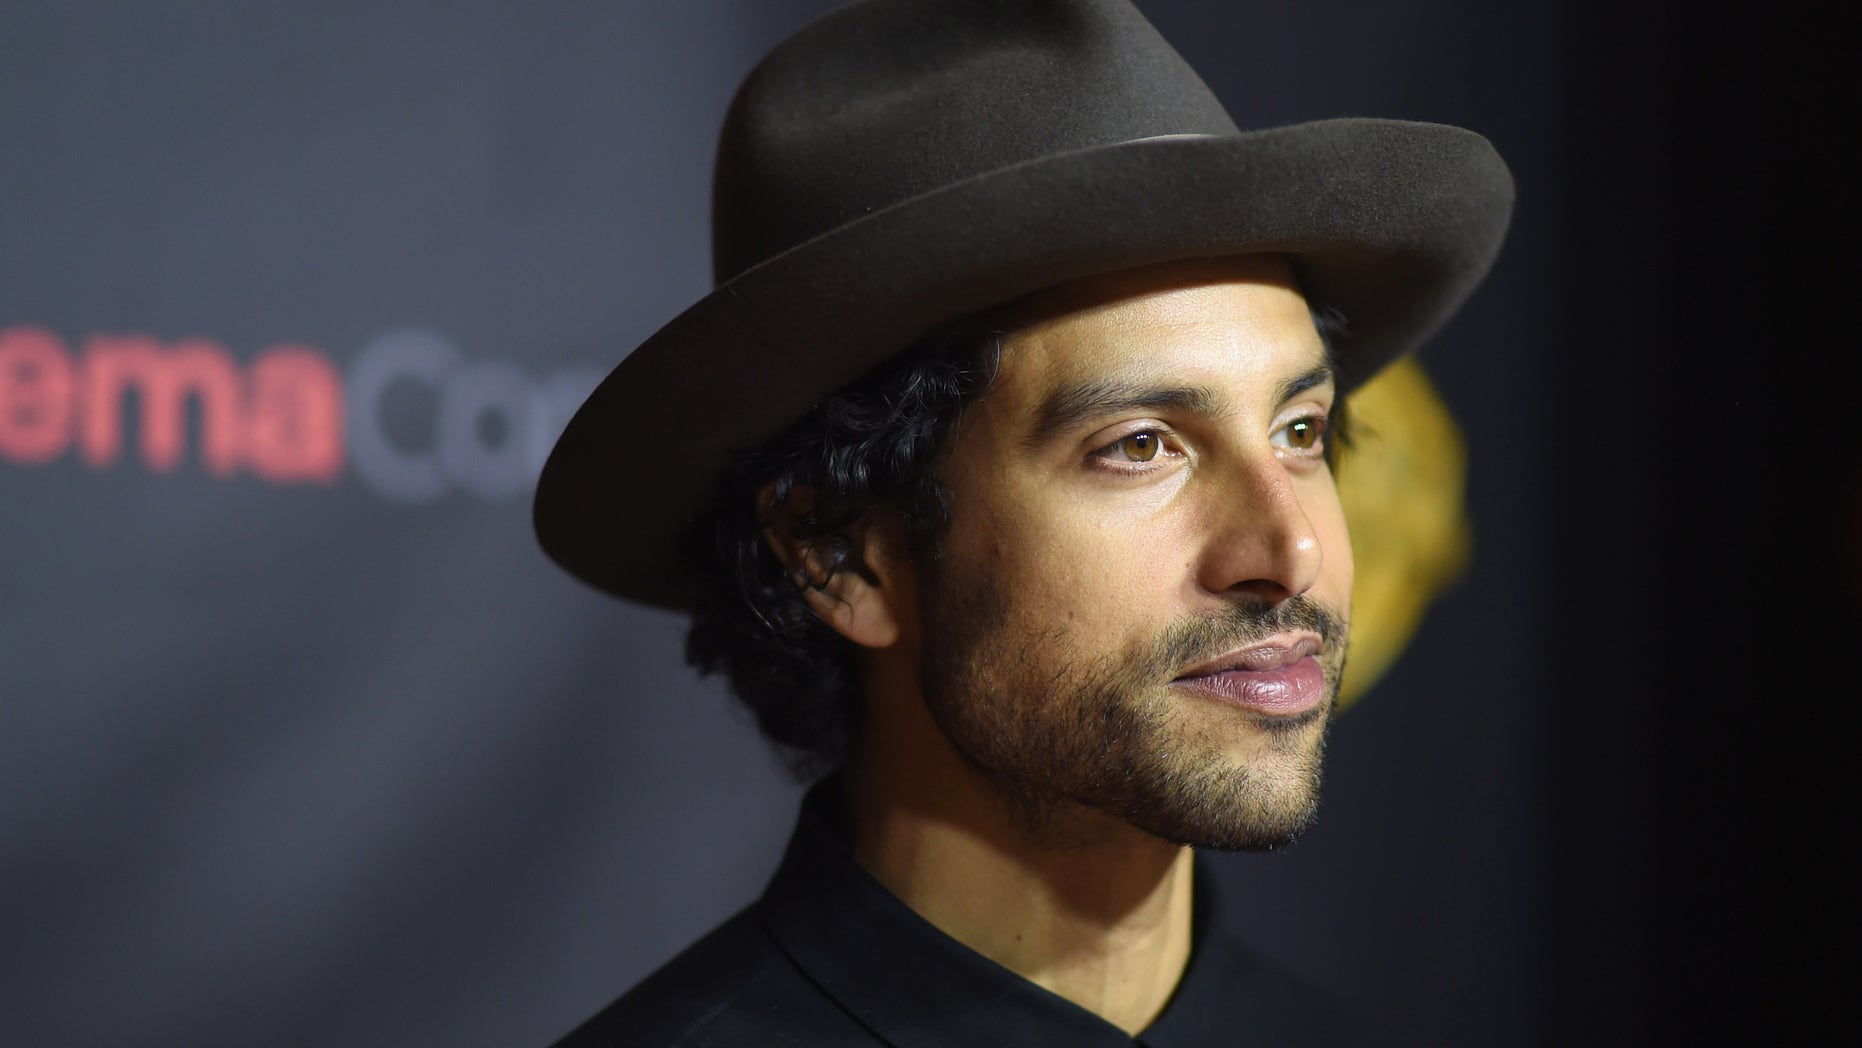 Adam Rodriguez  during CinemaCon on April 21, 2015 in Las Vegas, Nevada.